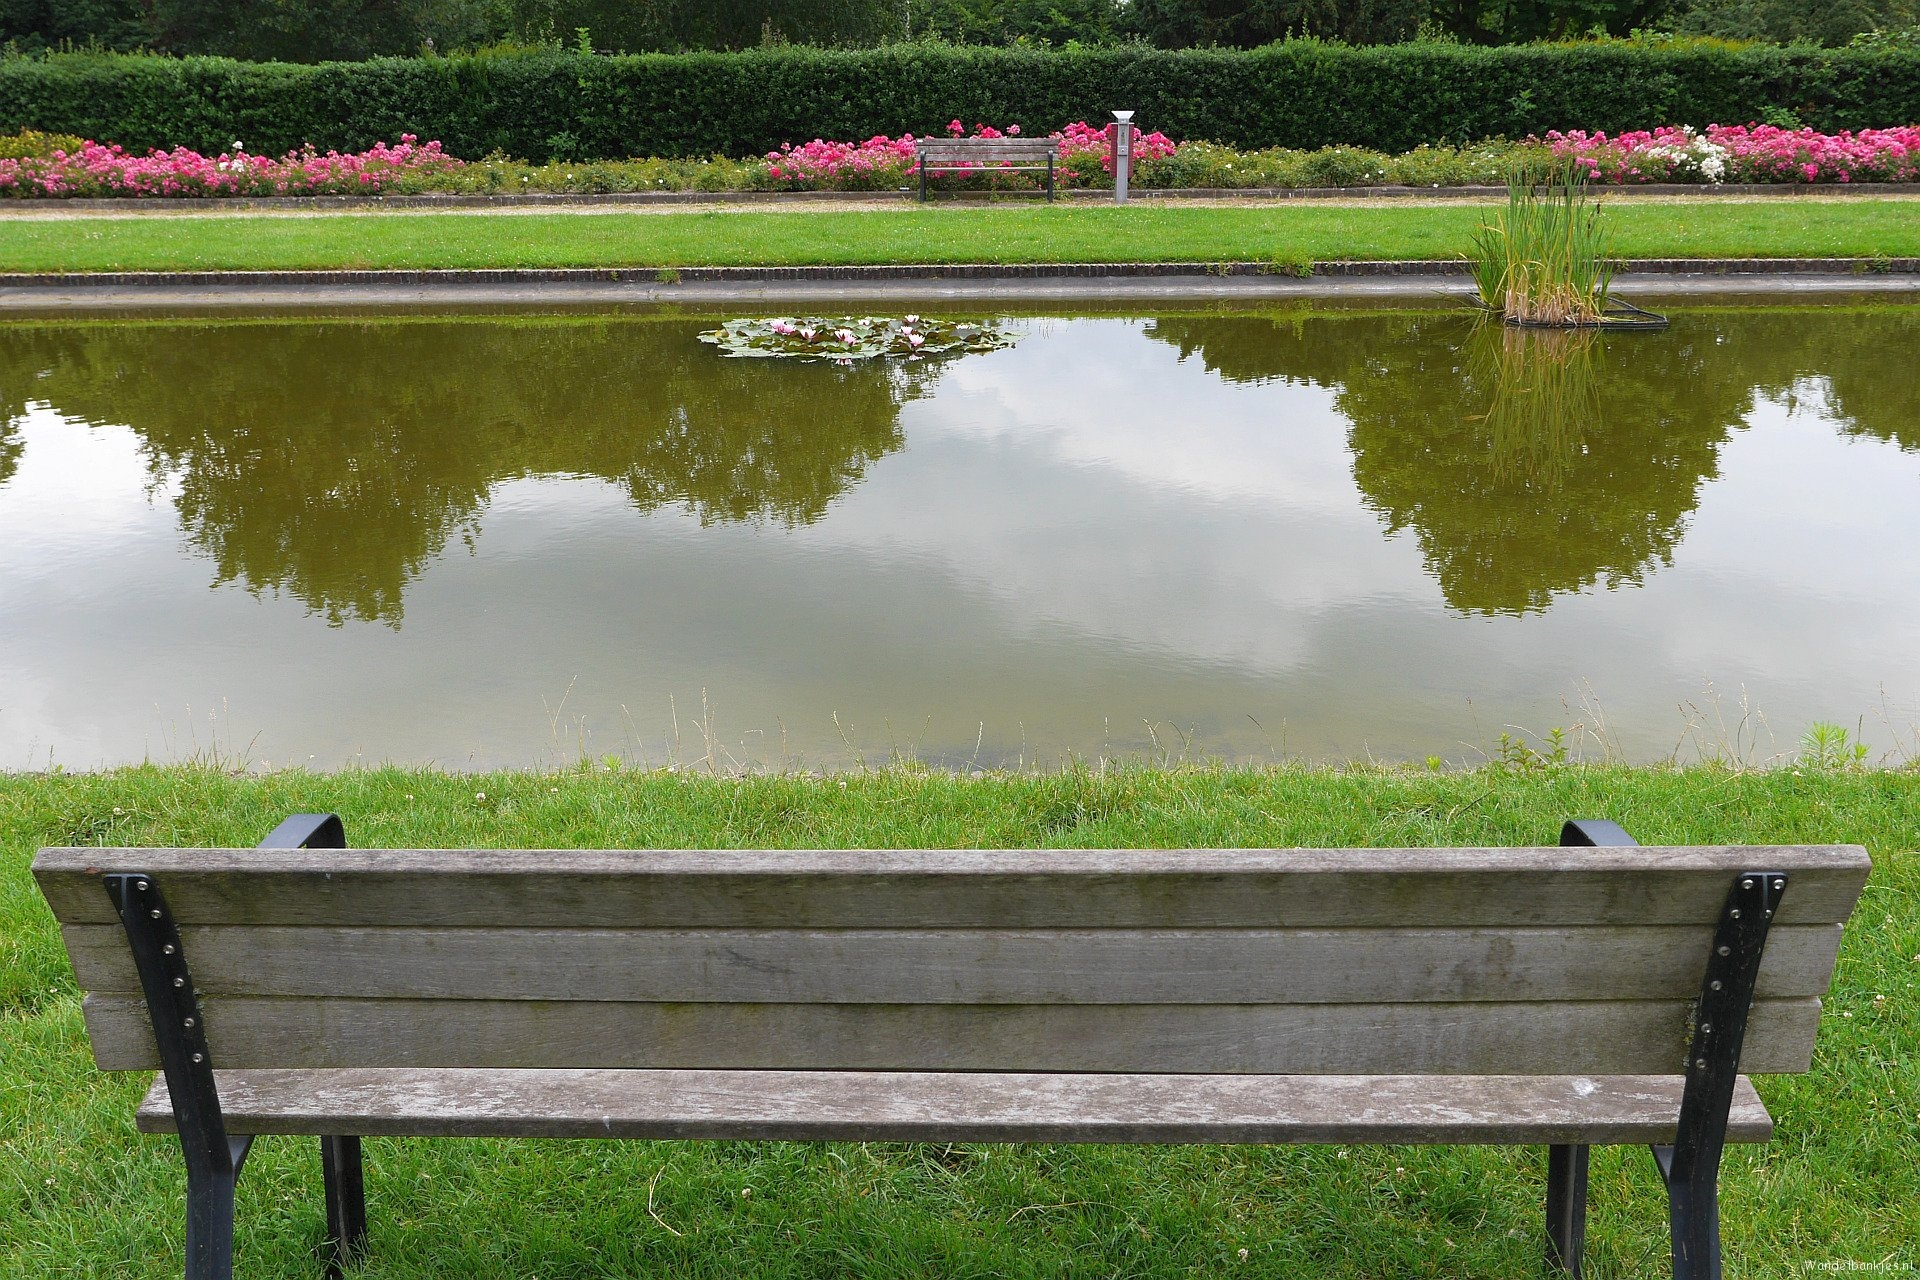 rt-arthurskm-pond-in-the-rosarium-stadspark-de-goffert-nijmegen-walkersbenches-walking-benches-https-t-co-srqhhdmocj